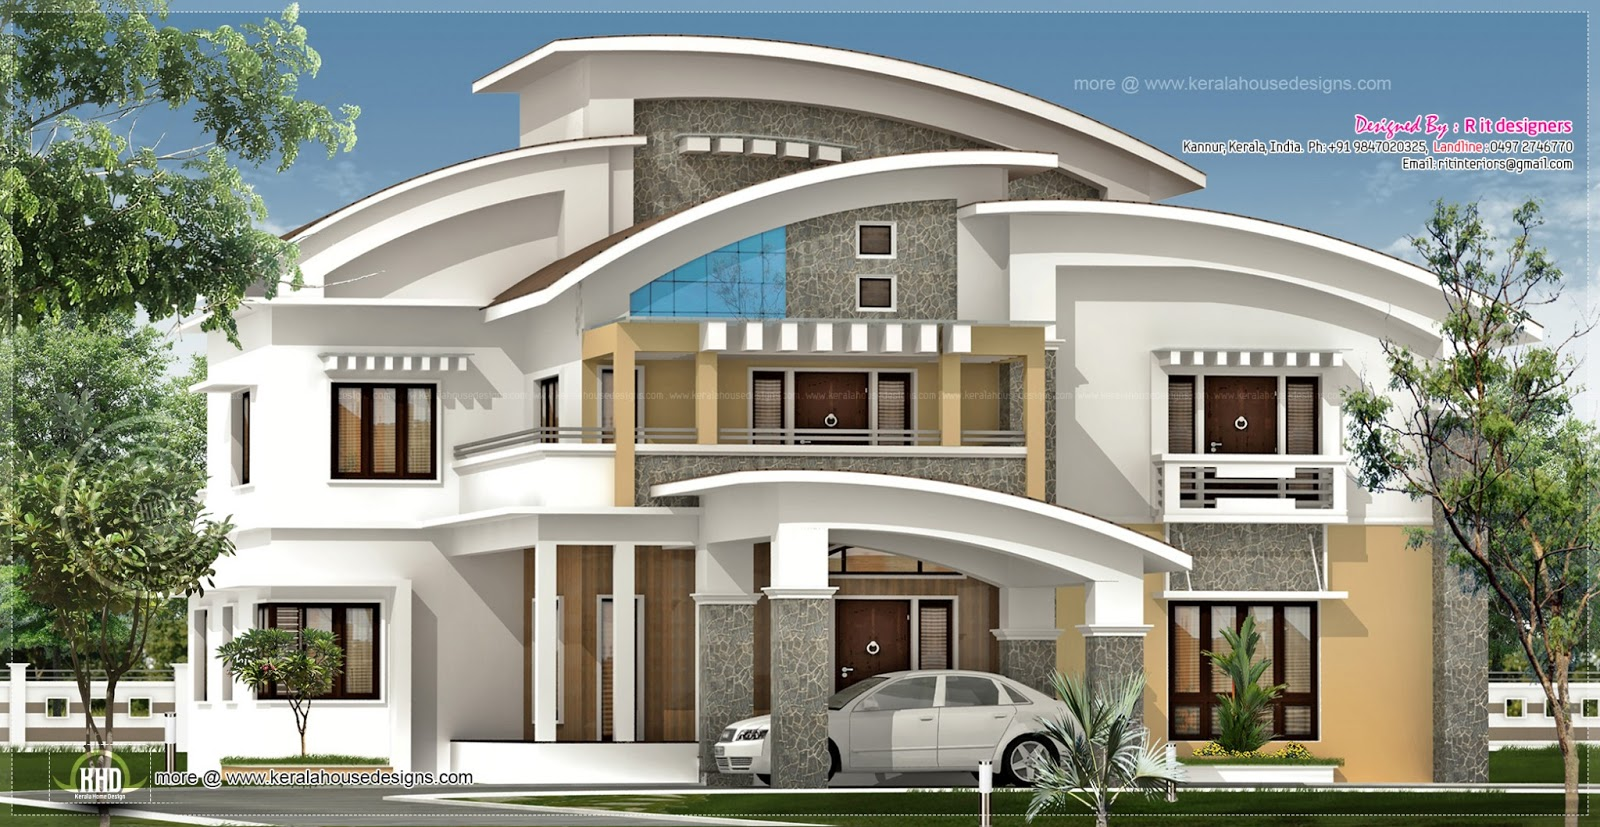 3750 square feet luxury villa exterior house design plans for Home design home design